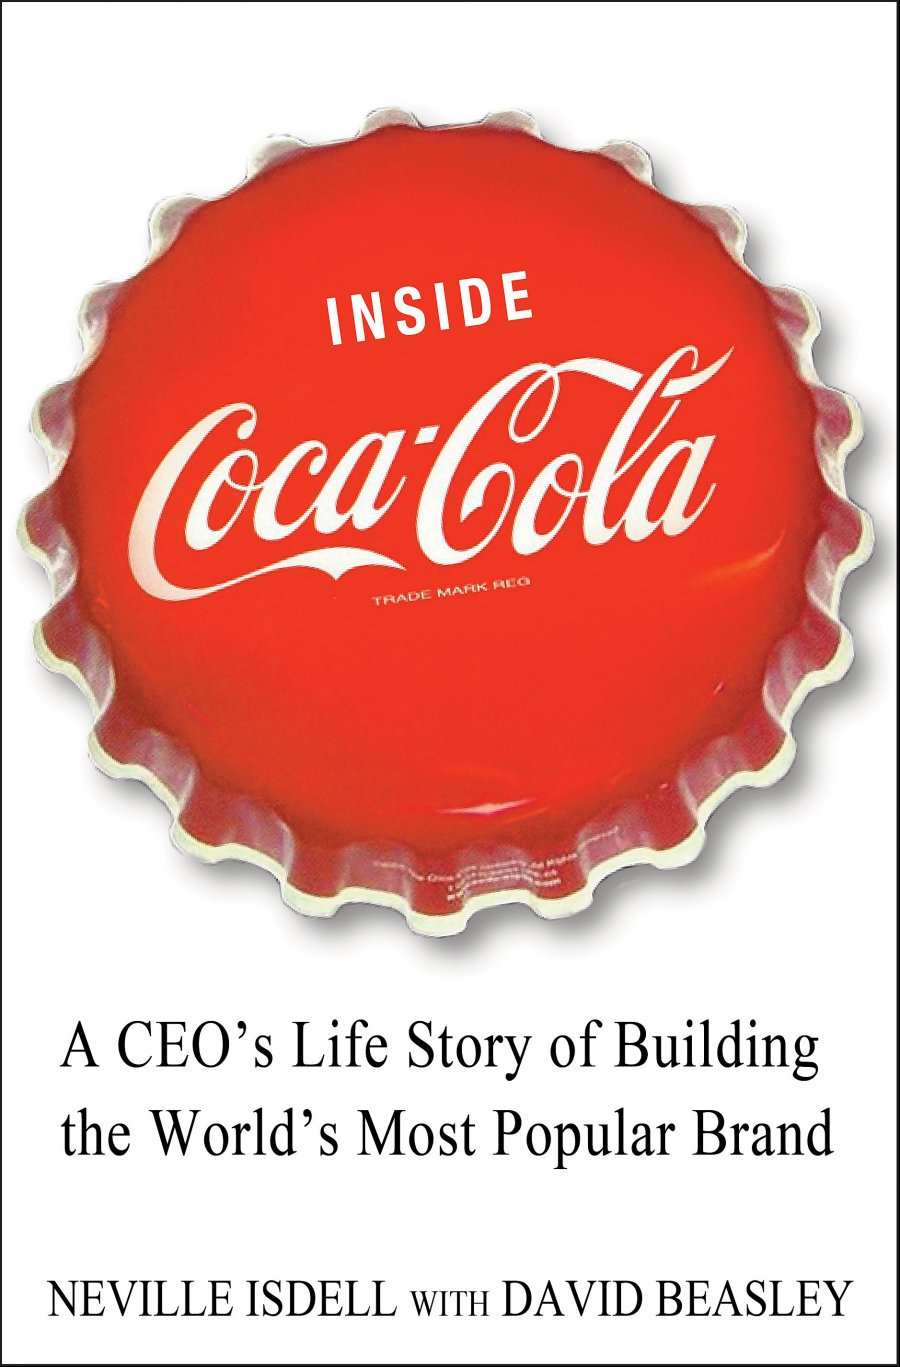 Inside Coca-Cola by David Beasley, Neville Isdell, ISBN: 9780312617950